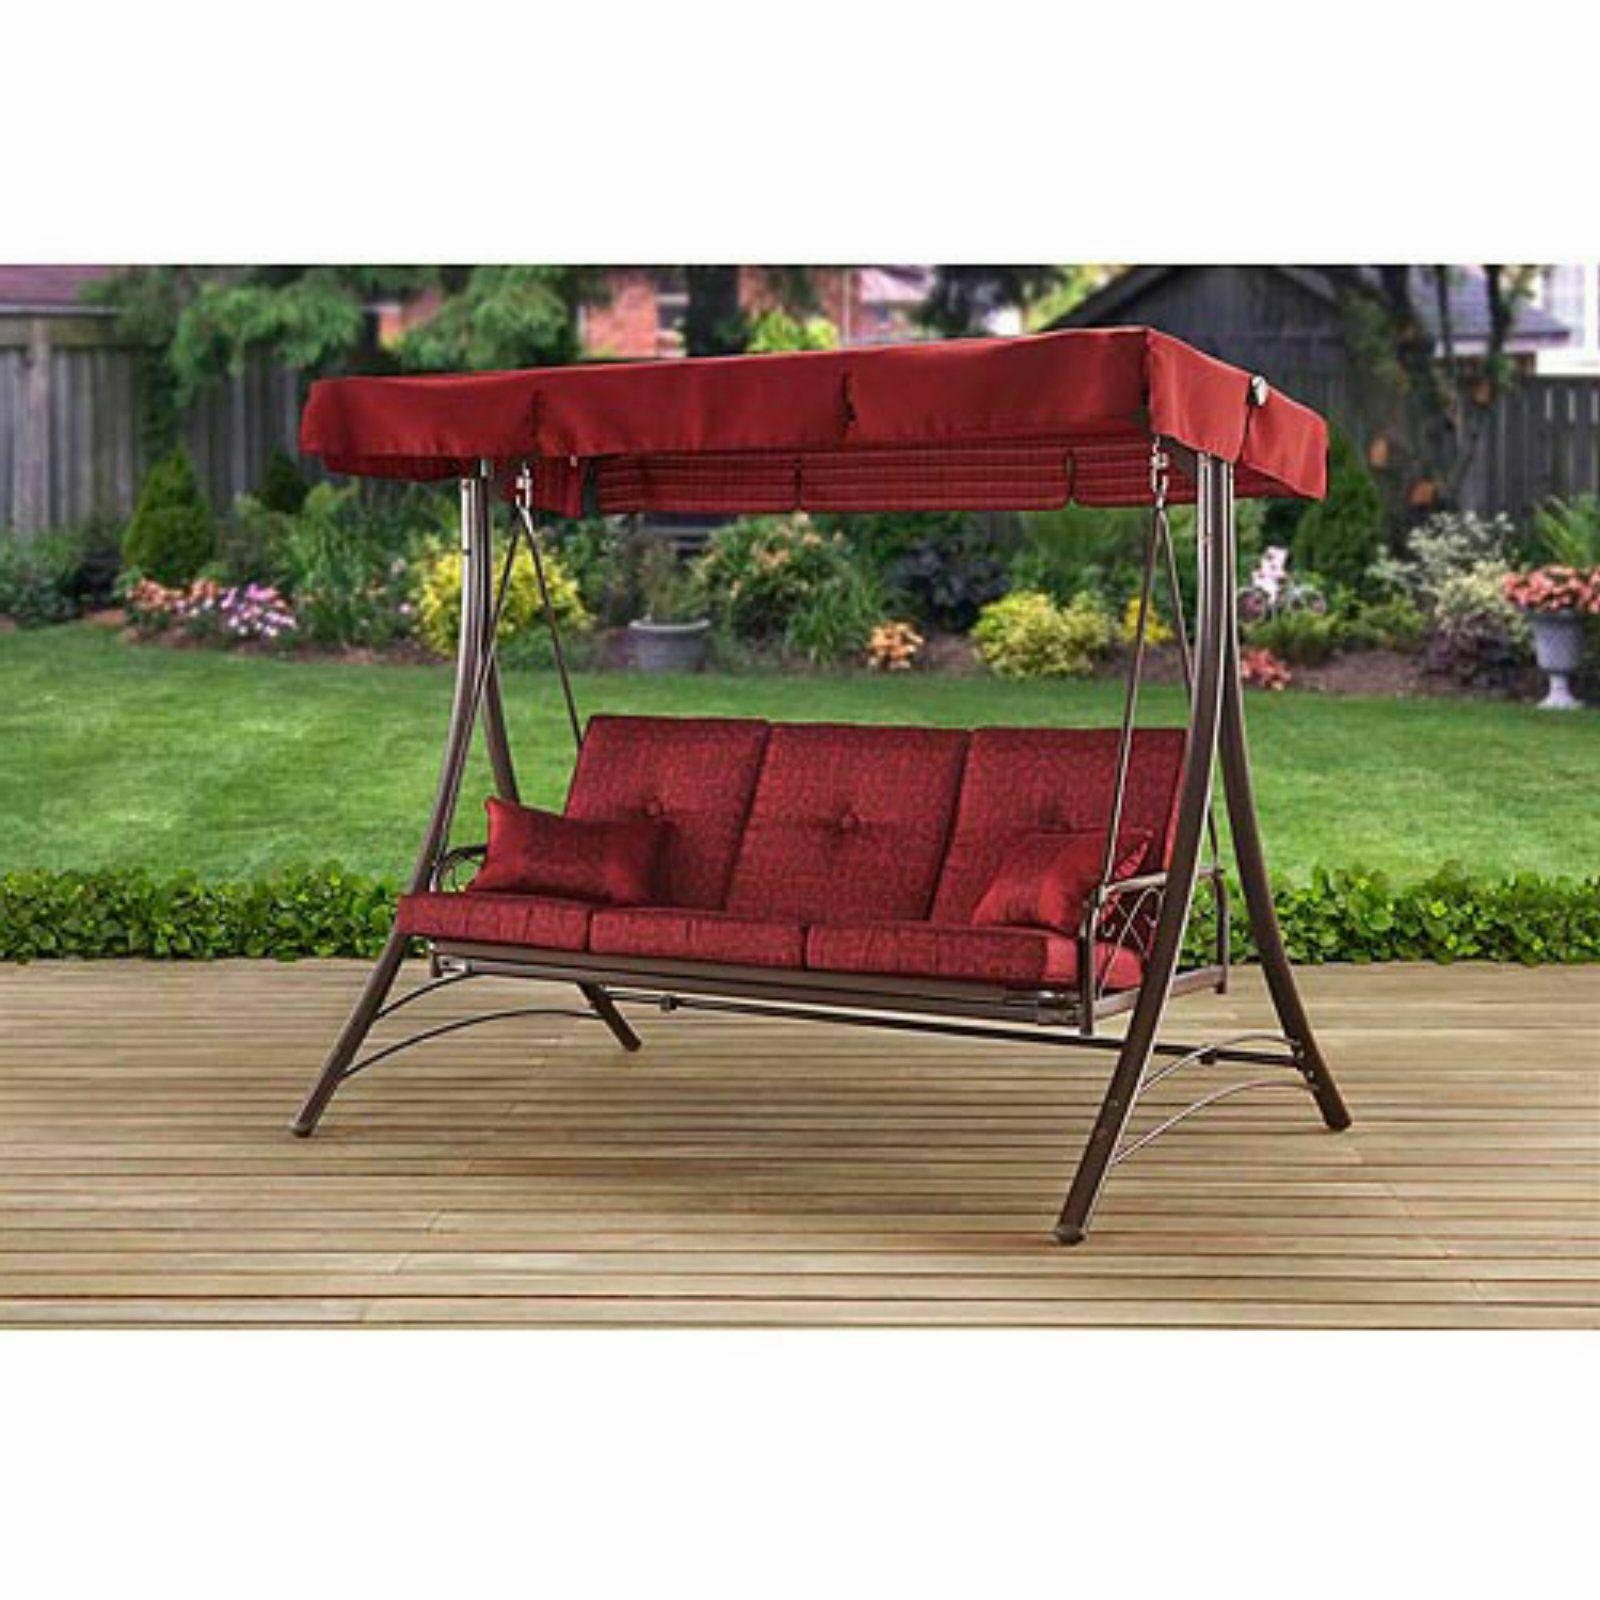 Front Porch Swing Set Outdoor Patio Swin Throughout 3 Person Red With Brown Powder Coated Frame Steel Outdoor Swings (View 12 of 25)